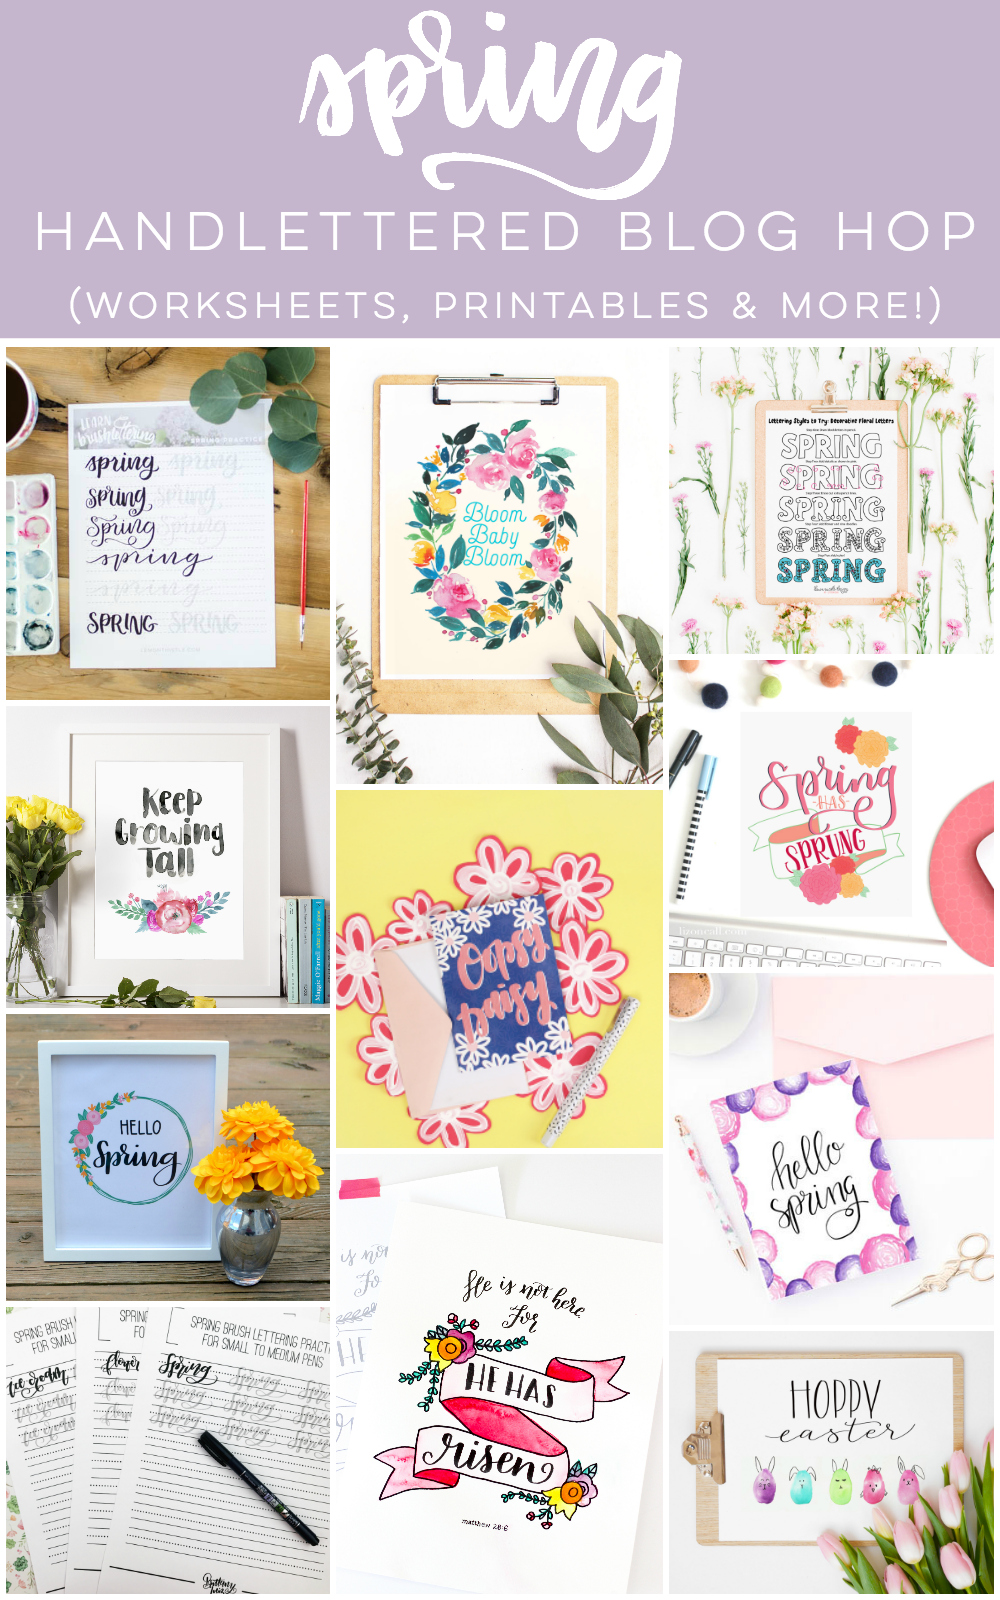 Spring hand lettered blog hop with lots of free printable hand lettering work sheets and prints.